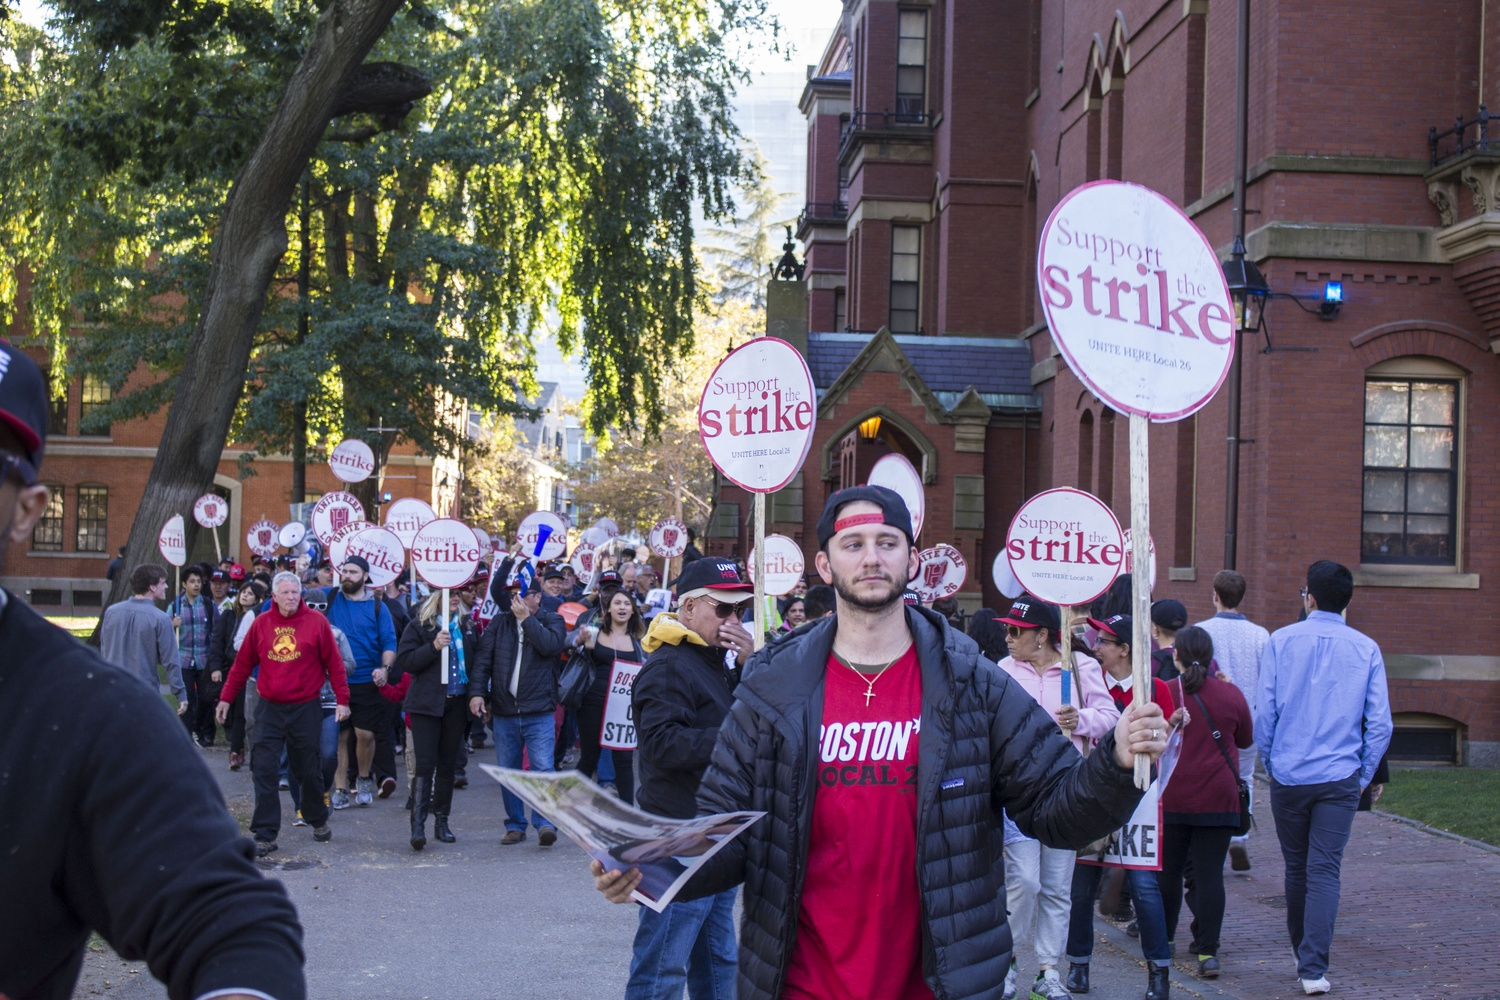 HUDS workers, members of UNITE HERE Local 26, and other HUDS supporters rally in Harvard Yard on Friday afternoon.